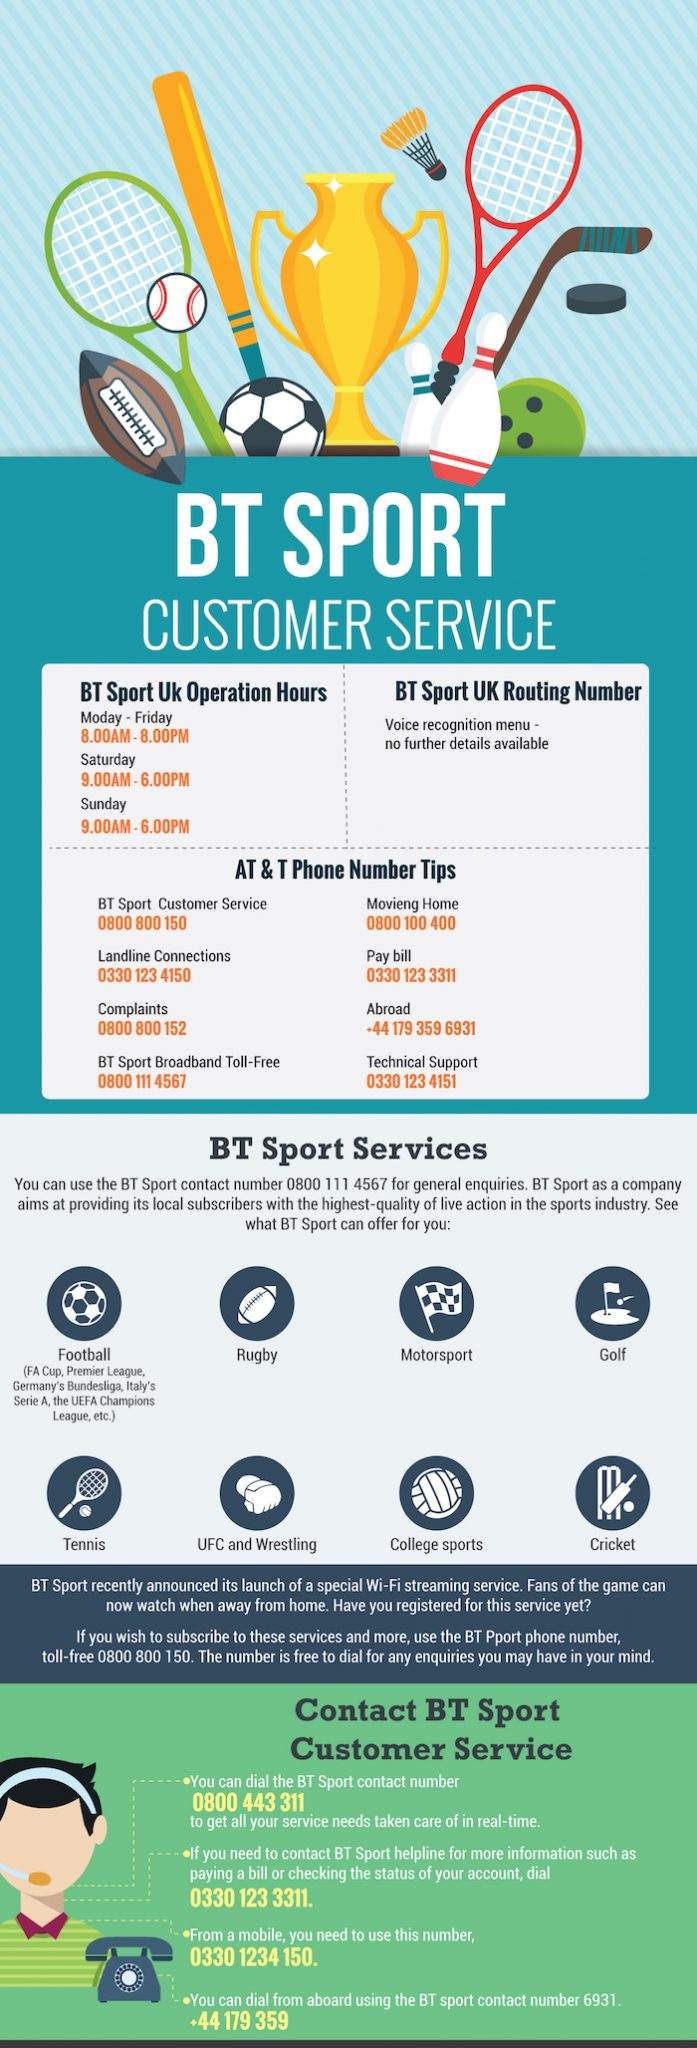 BT Sport Contact Numbers UK